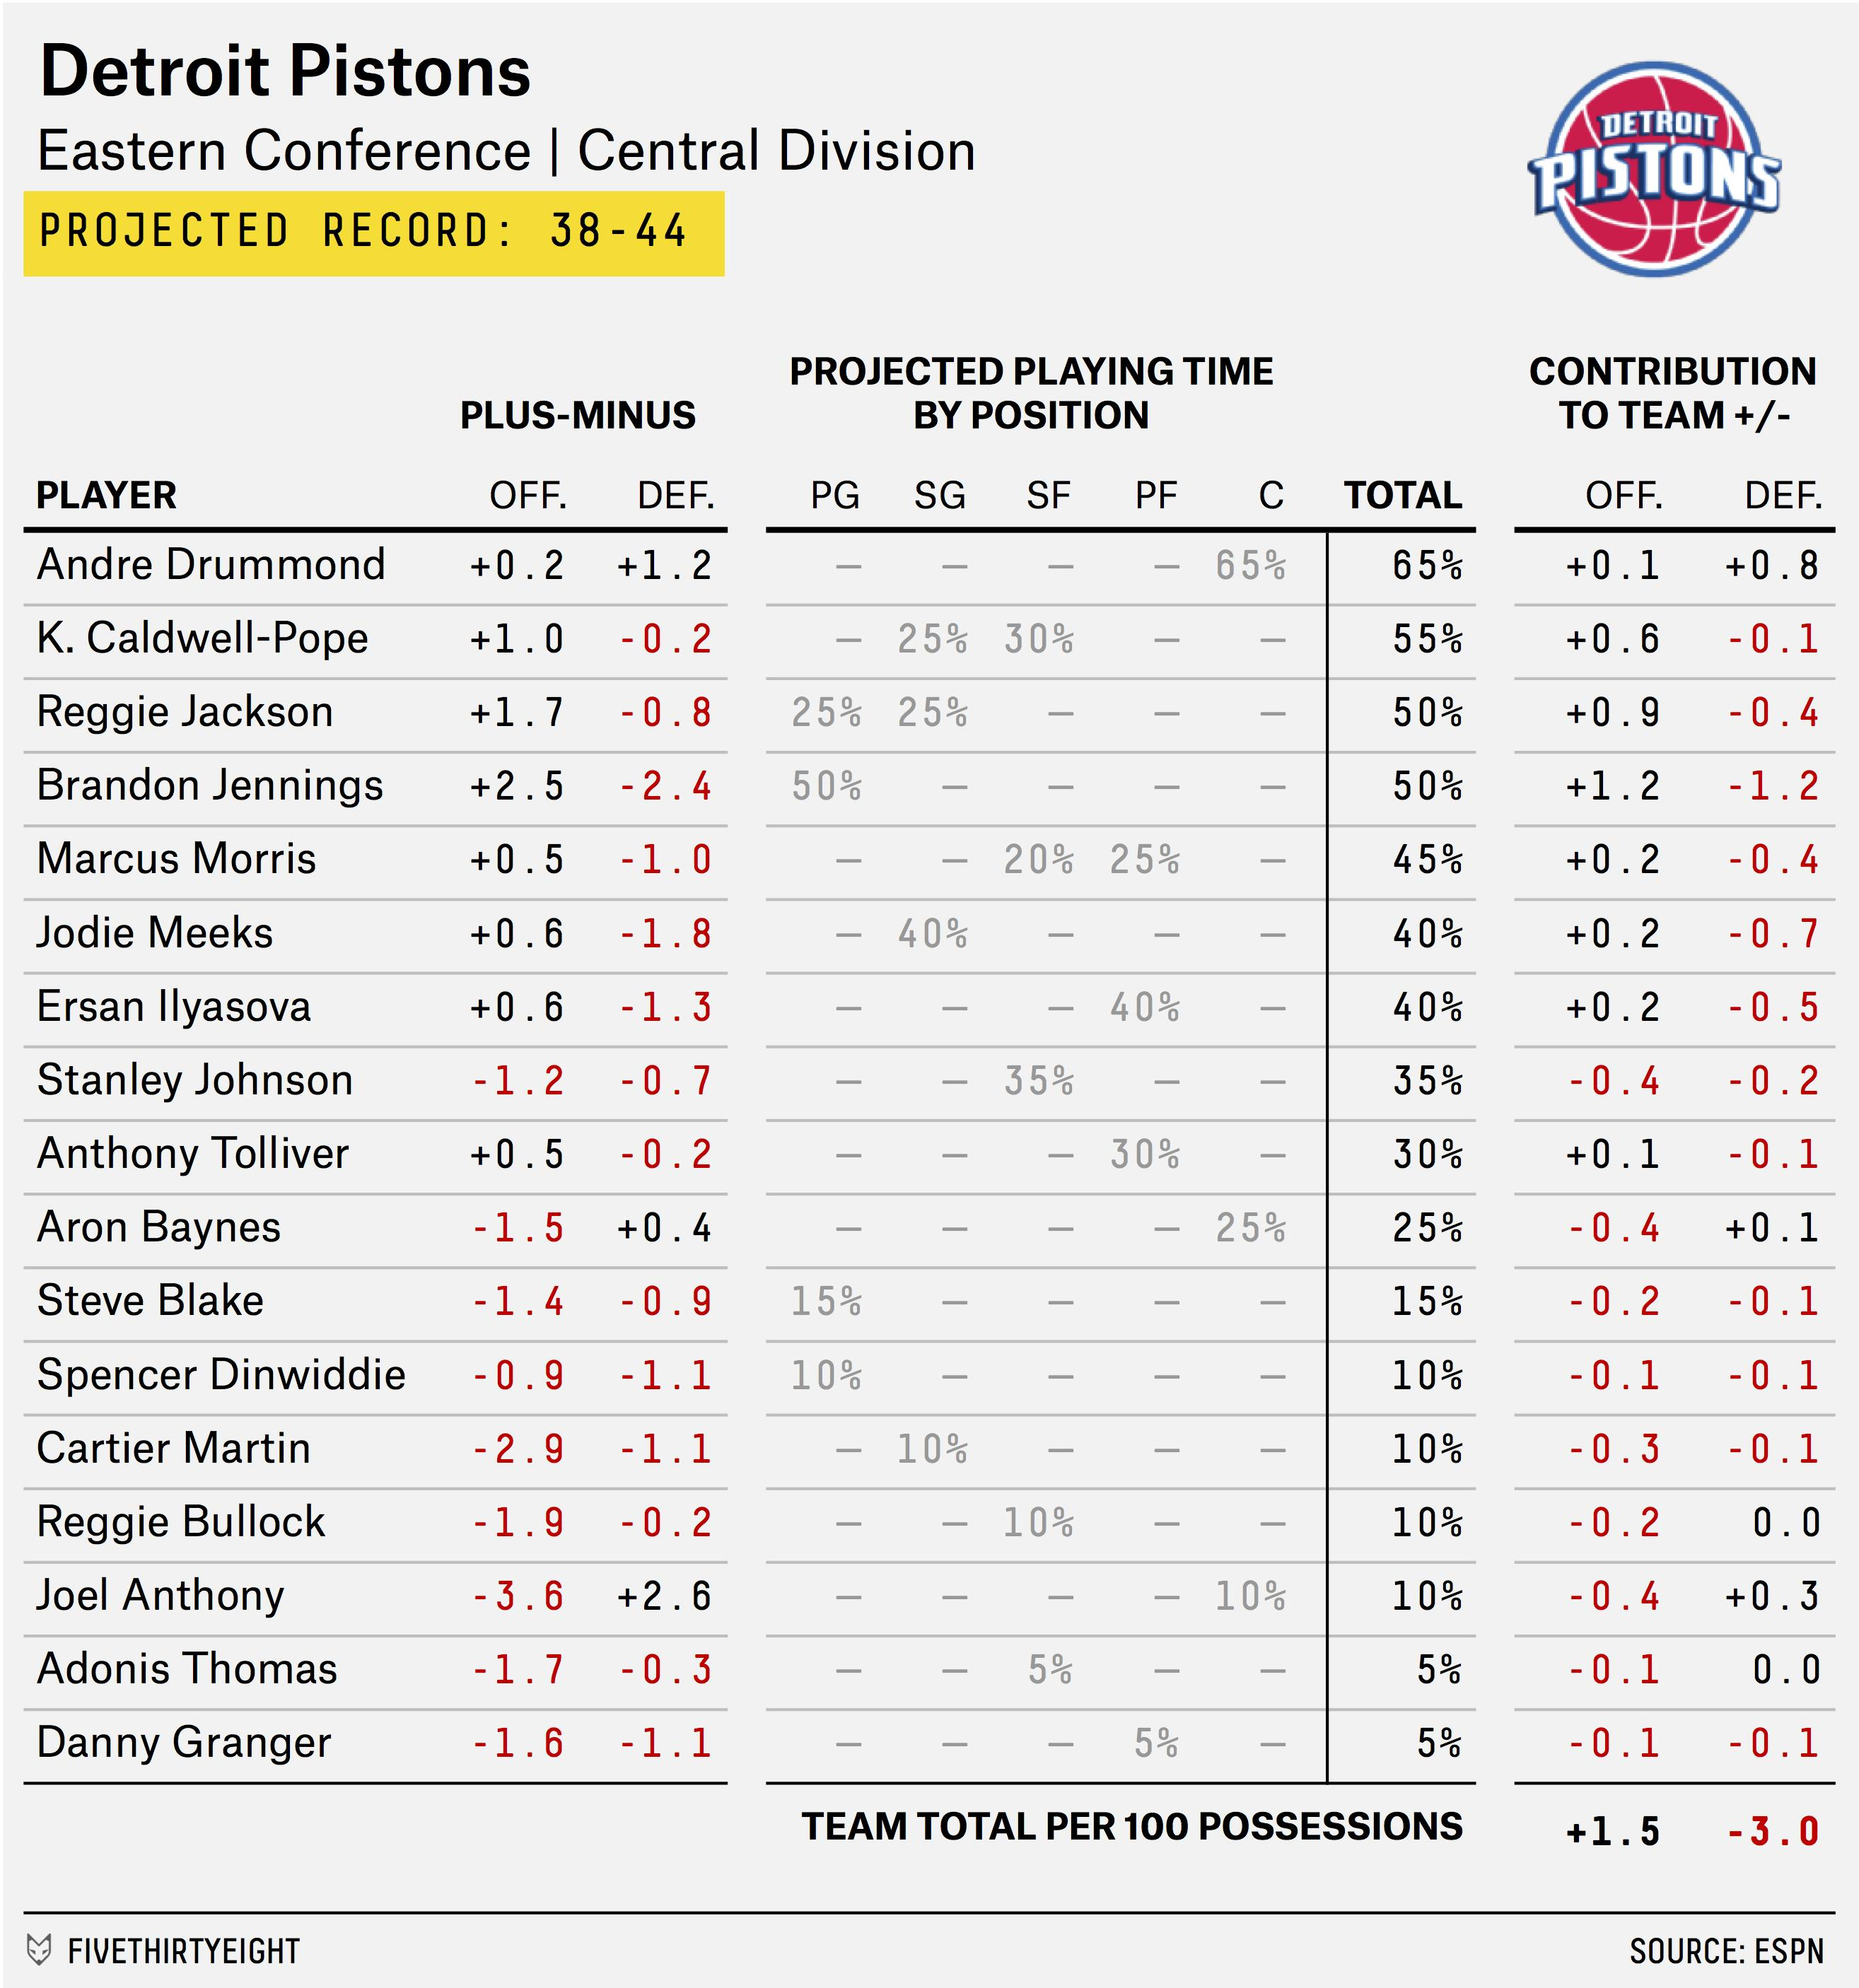 2015-16 NBA Preview: The Pistons Could Stop Being Terrible